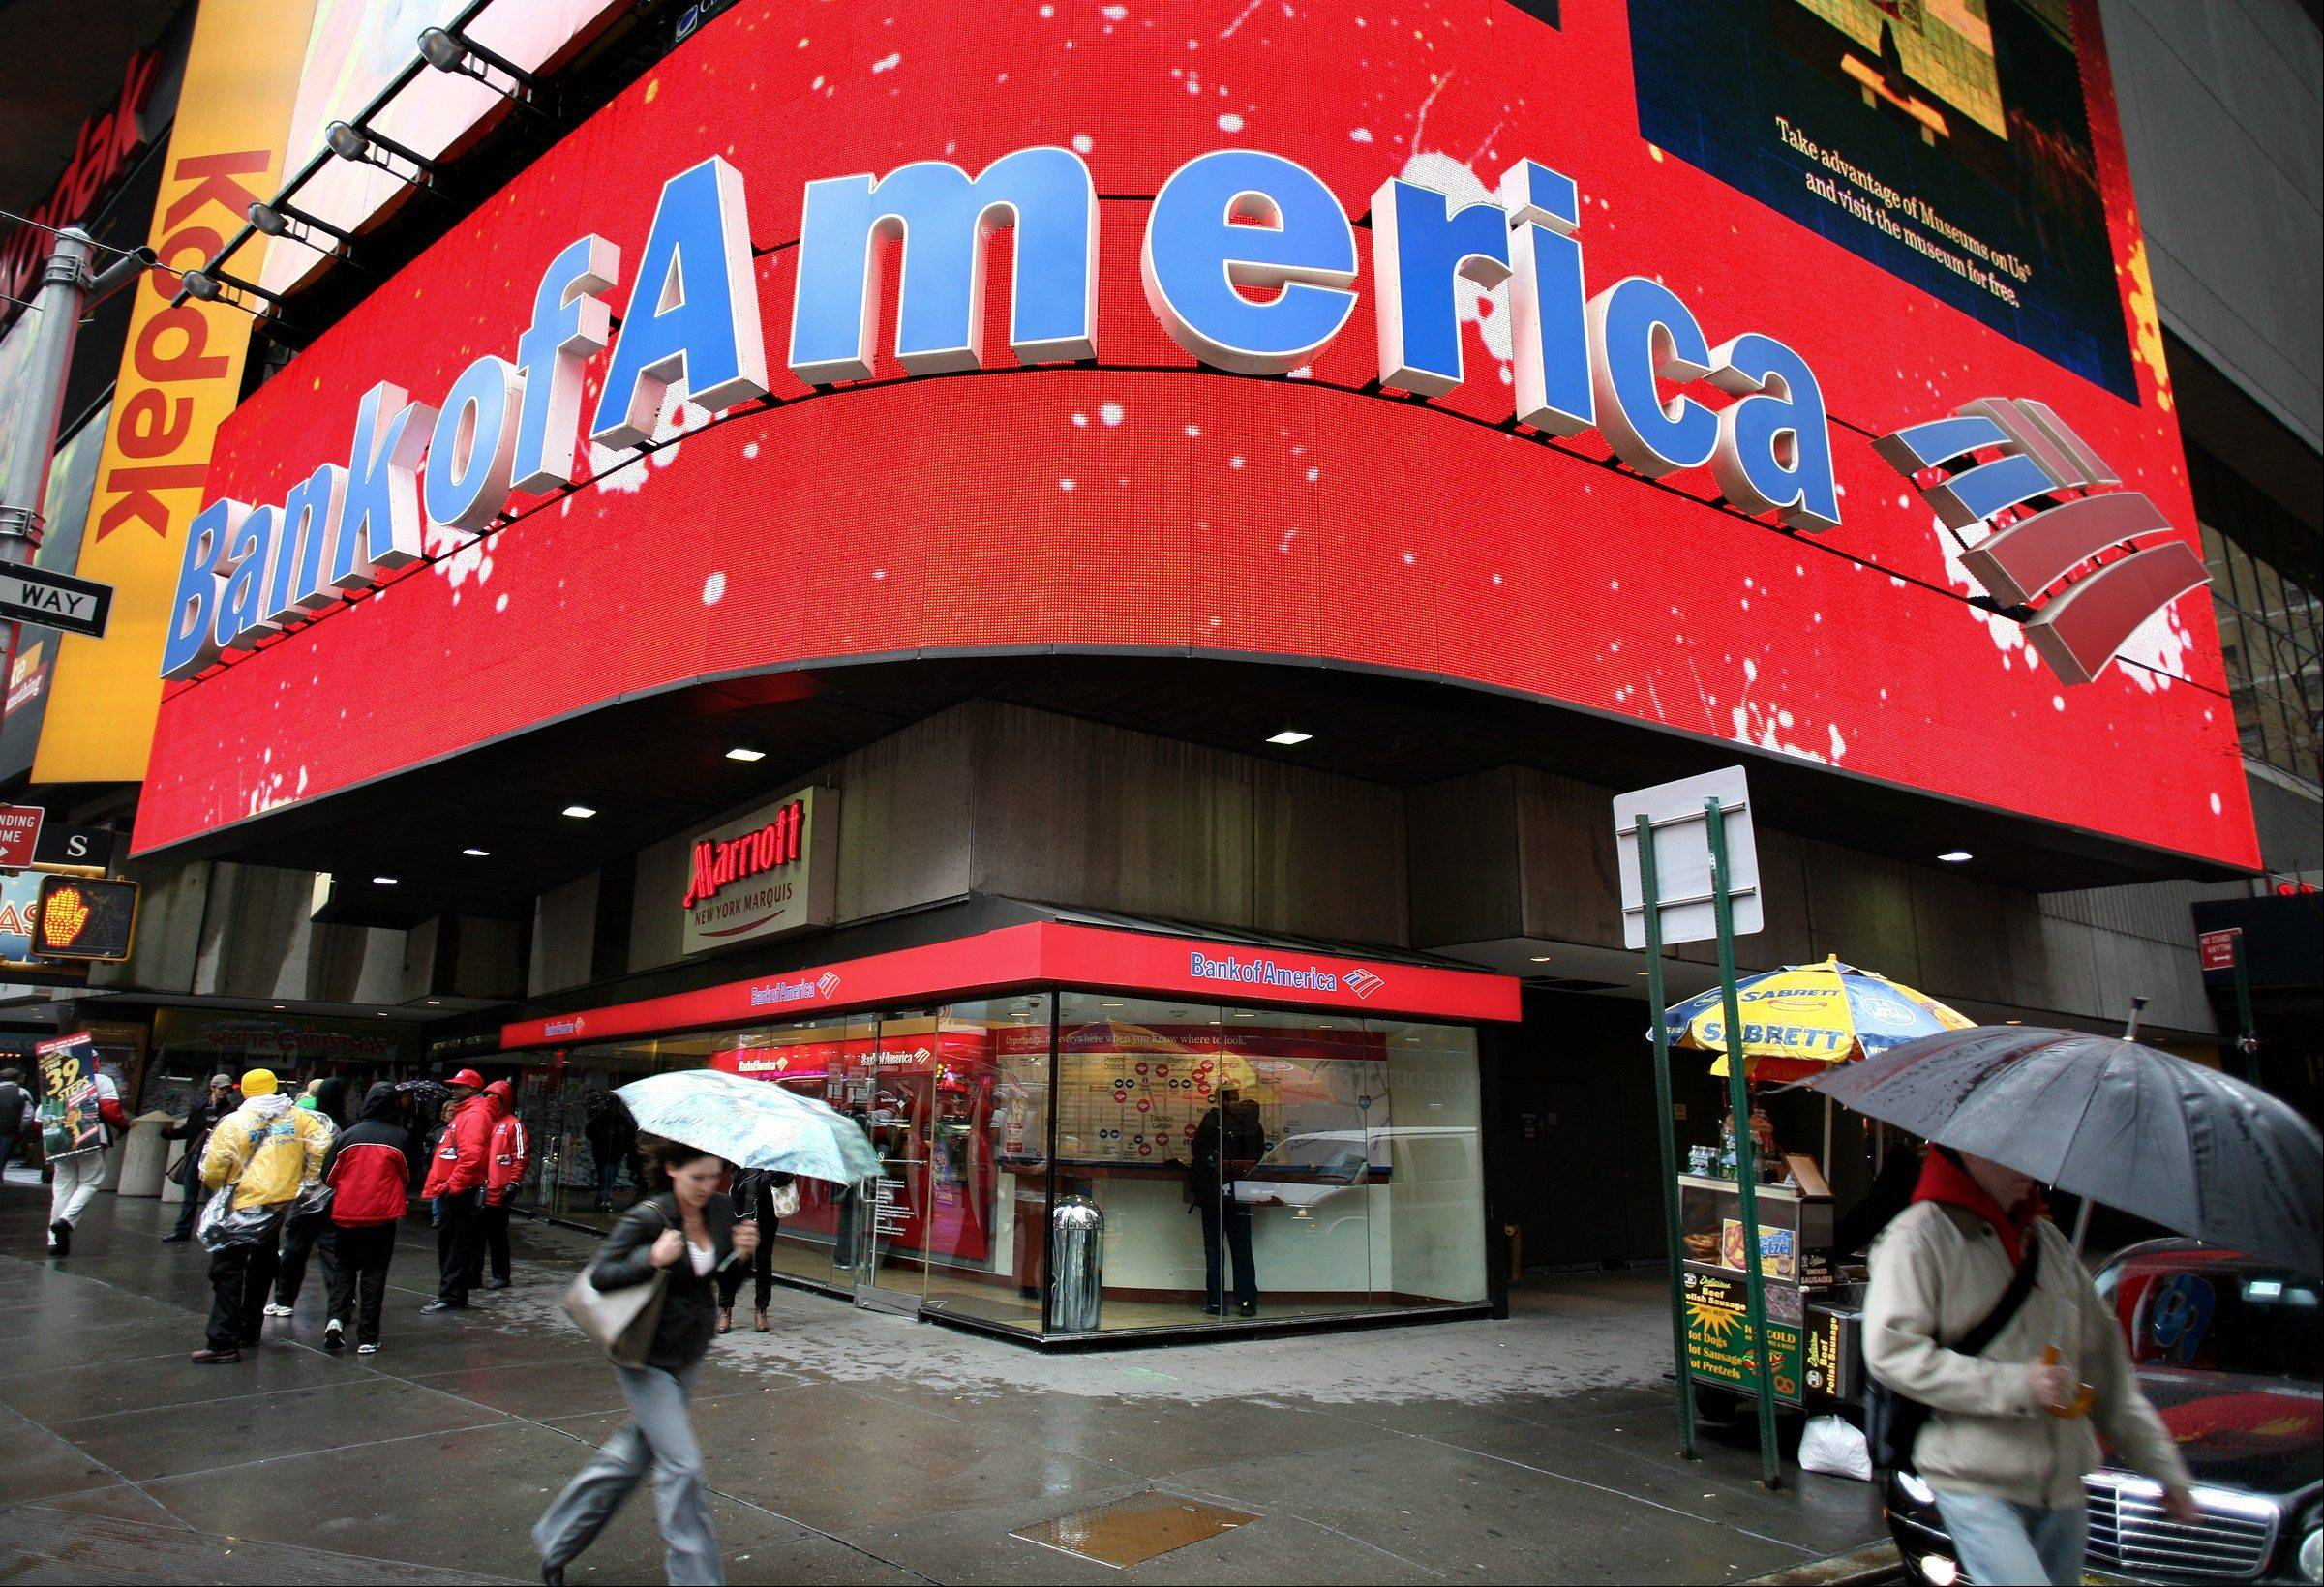 An administrative law judge with the U.S. Department of Labor has ordered Bank of America to pay black job applicants more than $2 million in back wages and interest to settle a discrimination case.